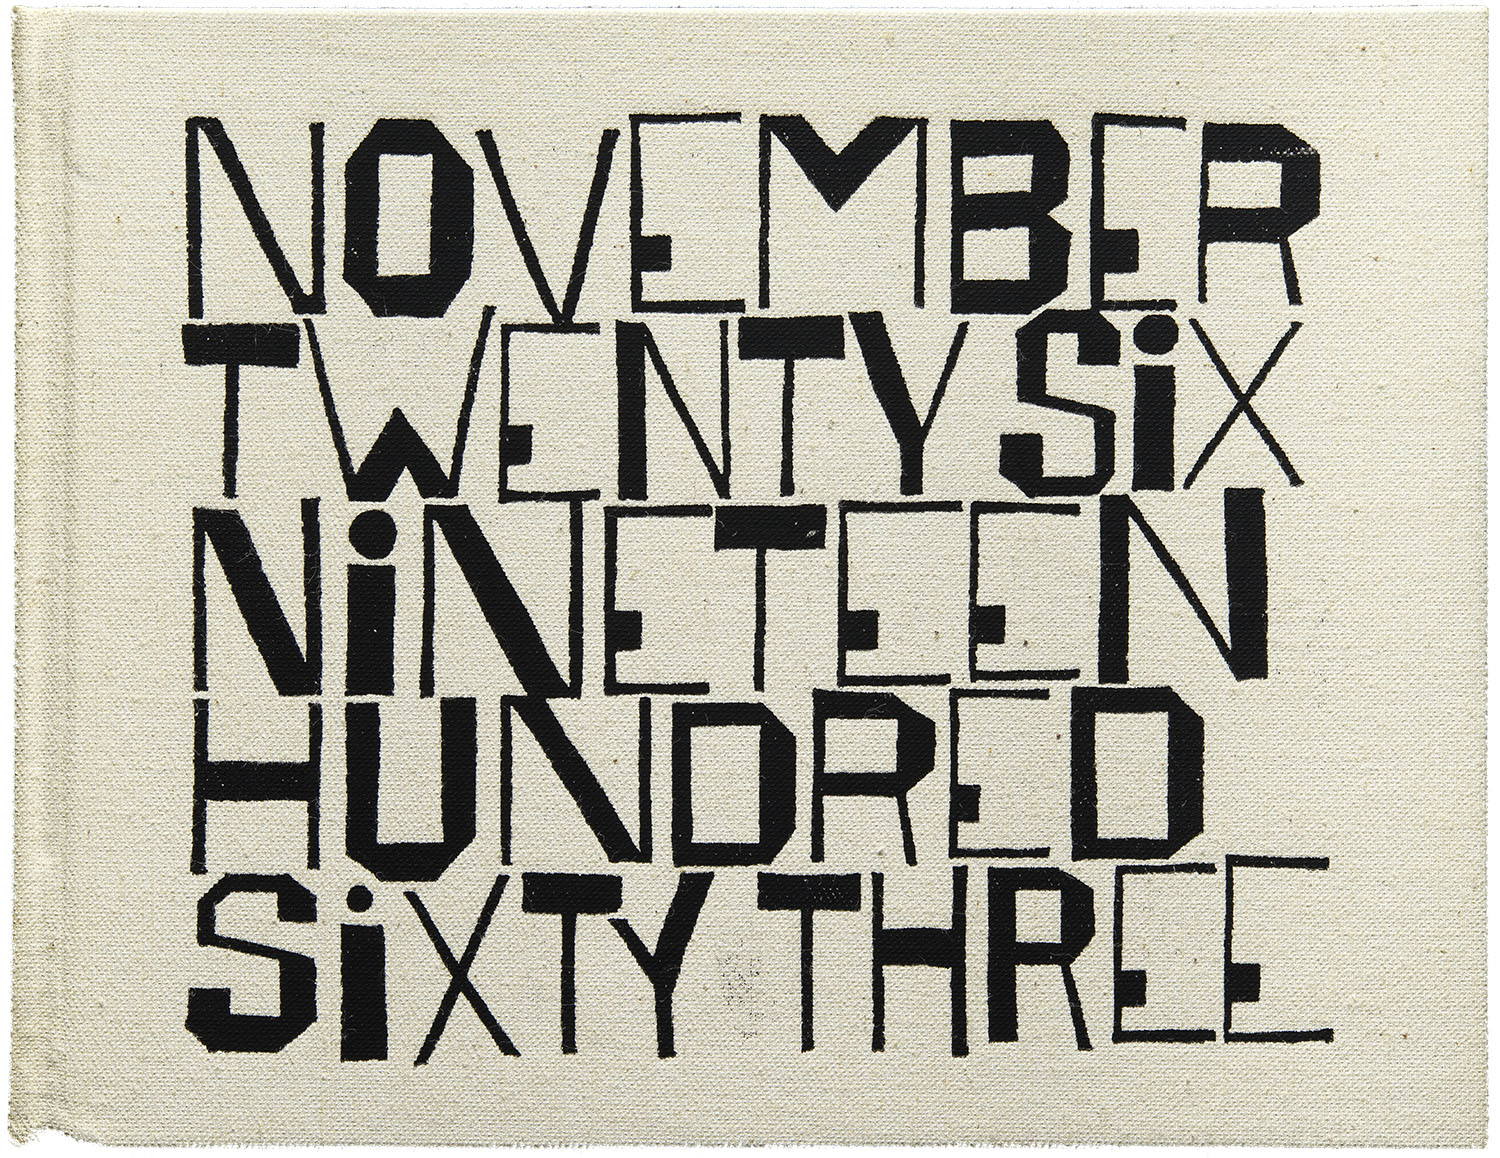 A 1964 book cover by Ben Shahn graces the month of October in the 2014 Letterform Archive Calendar.